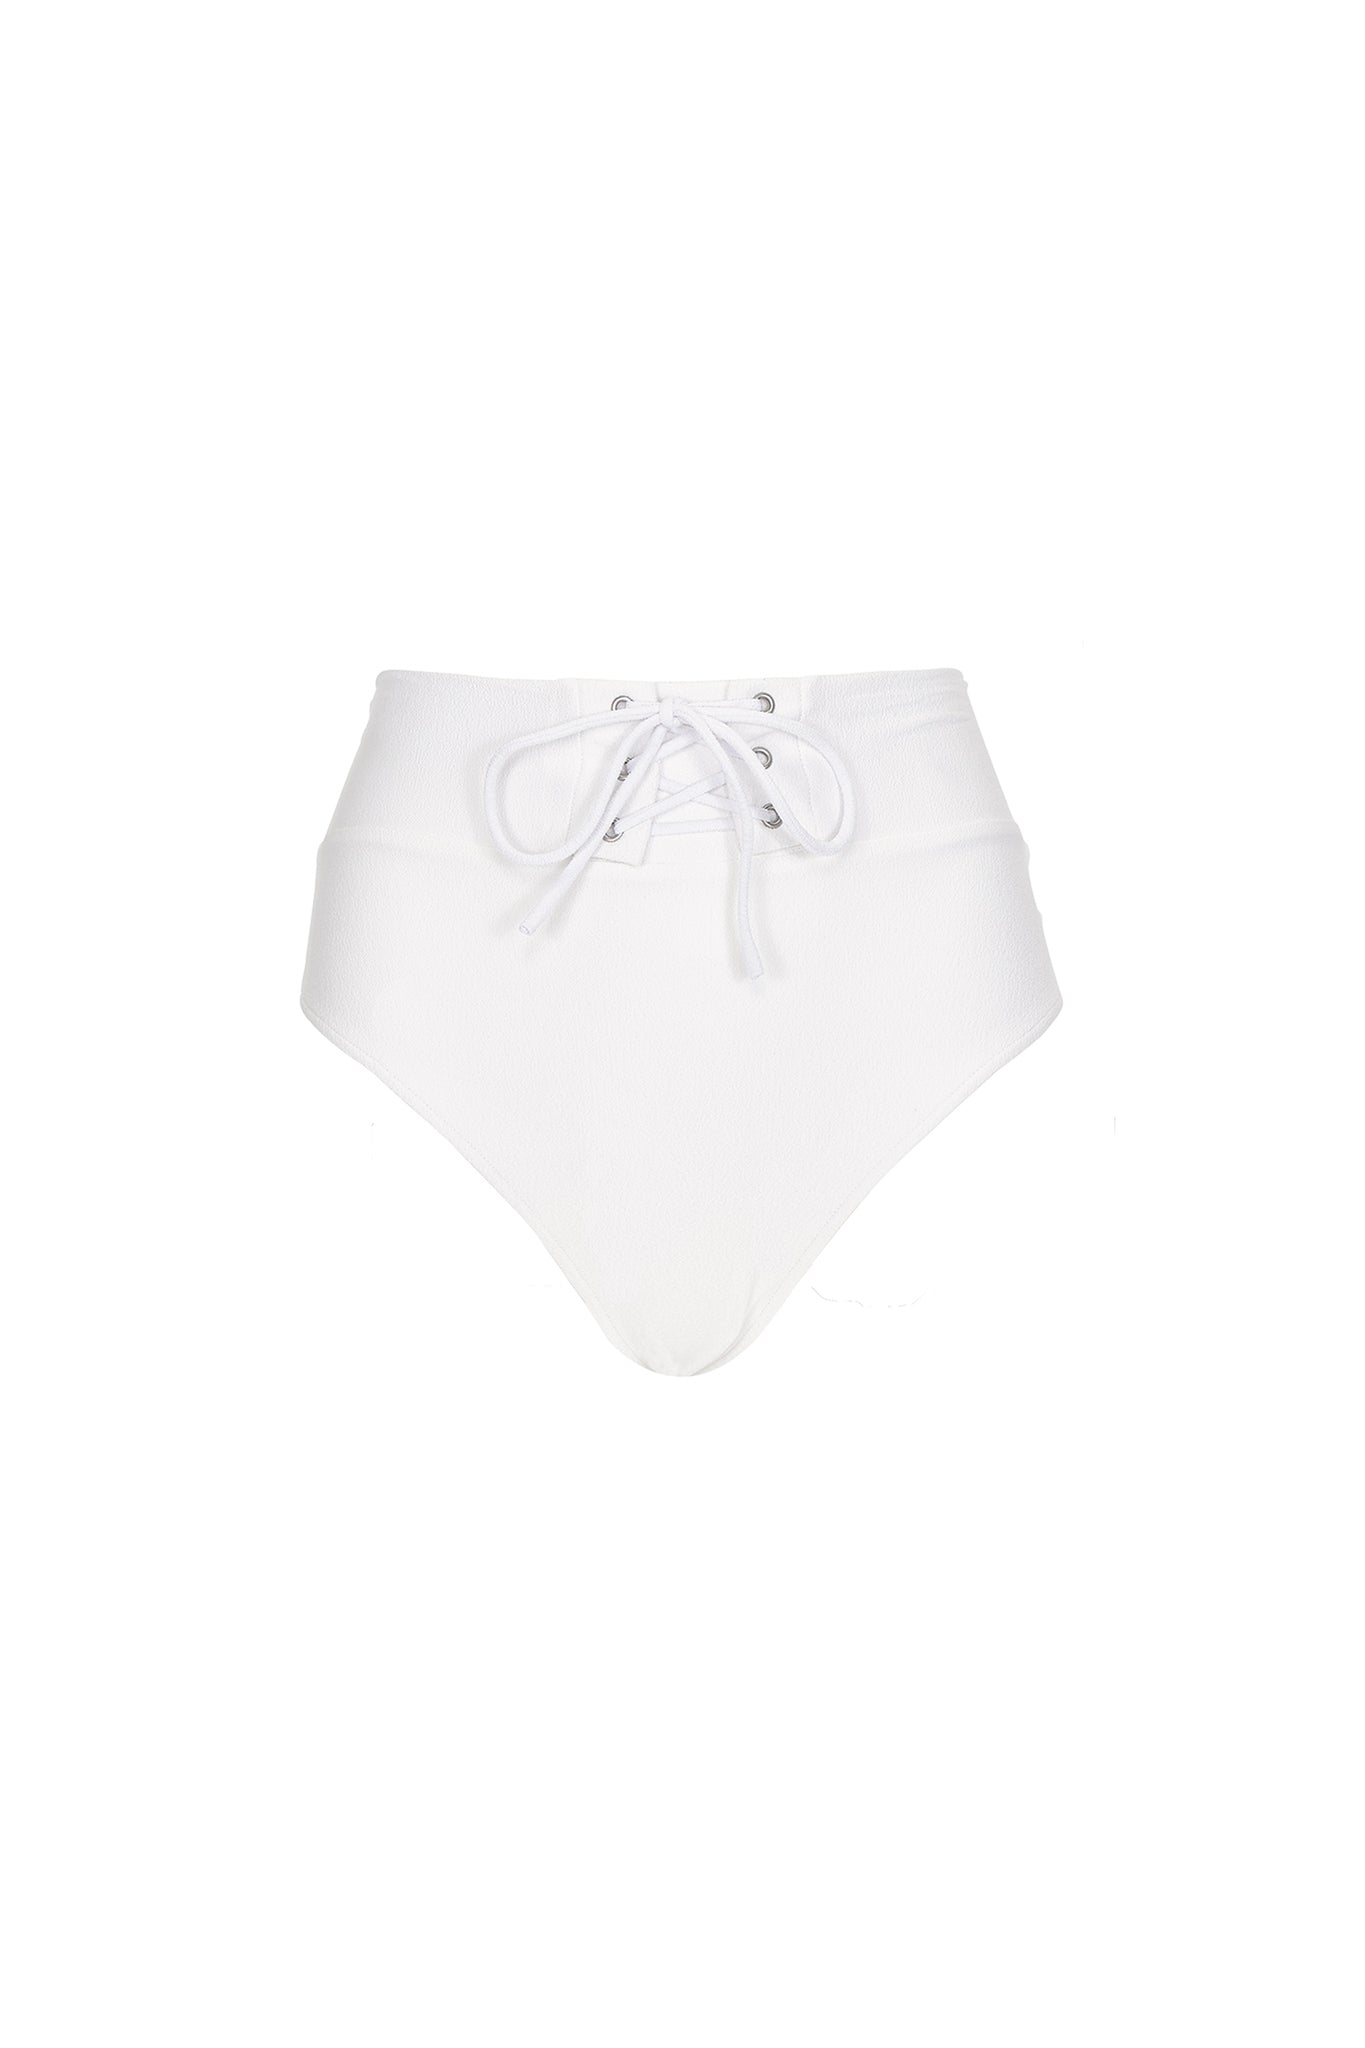 Henley high waist bottom in cream crepe, product shot back